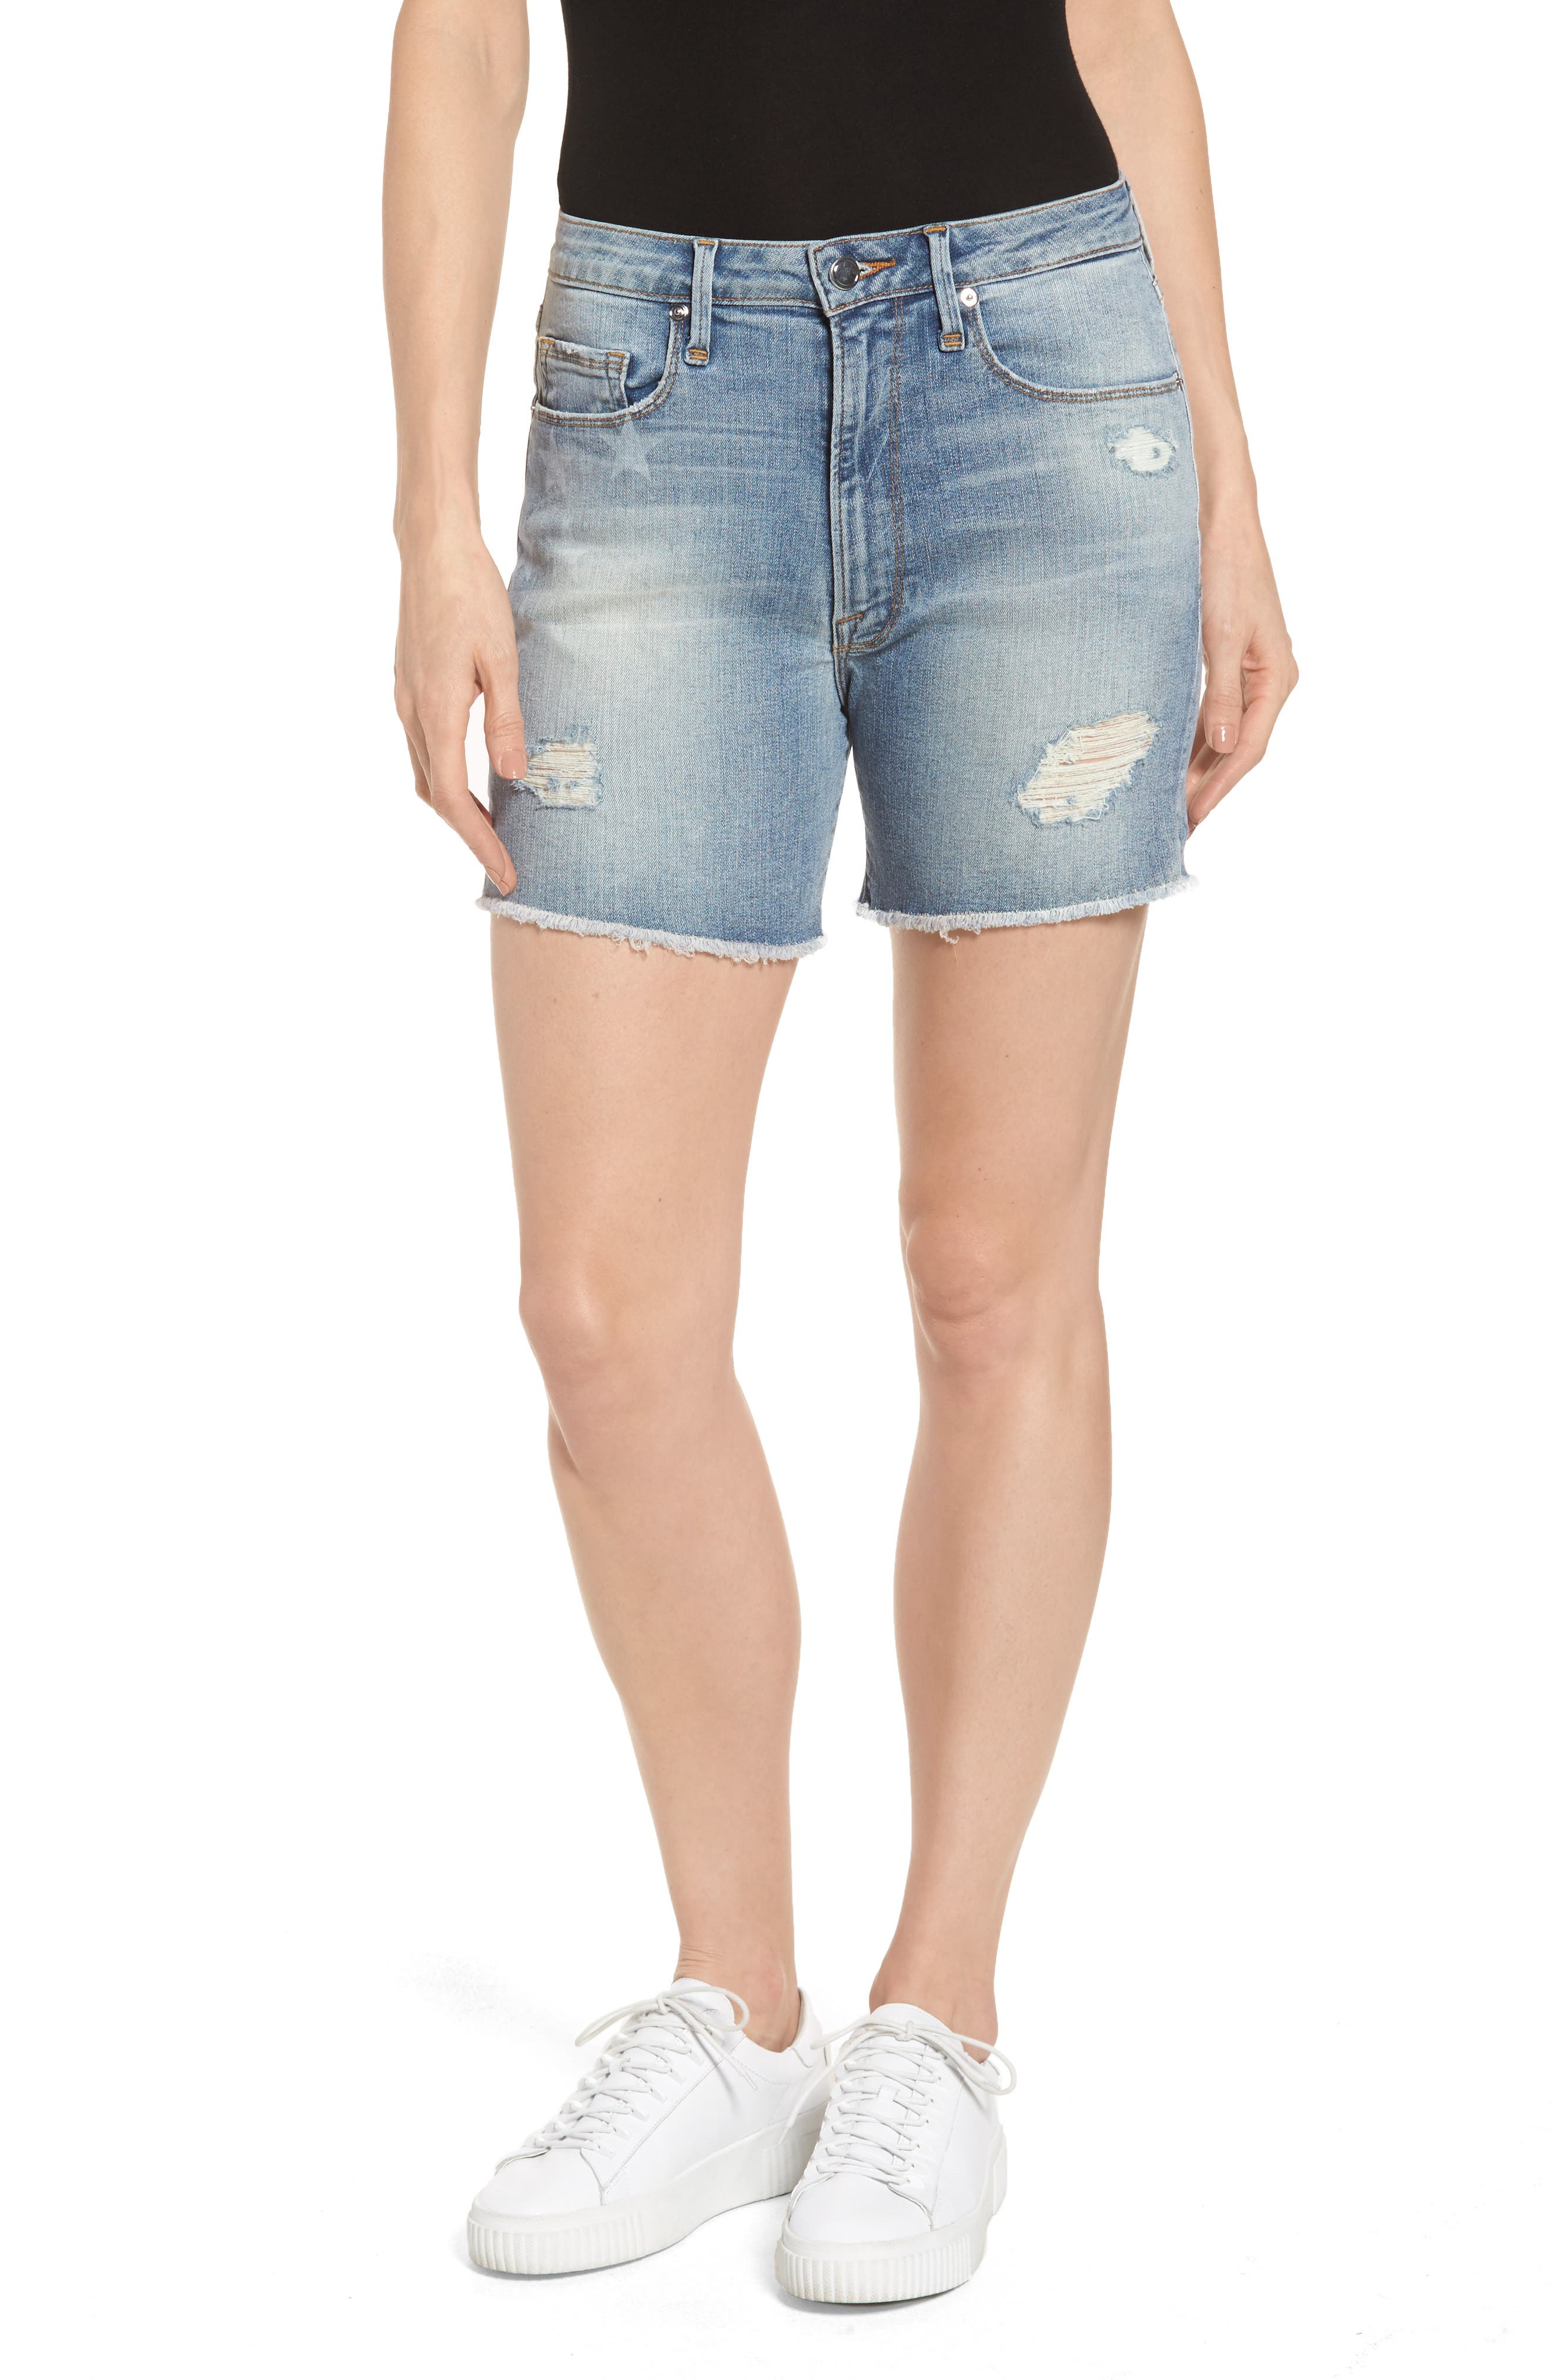 Alternate Image 1 Selected - Good American High Waist Denim Cutoff Shorts (Extended Sizes)